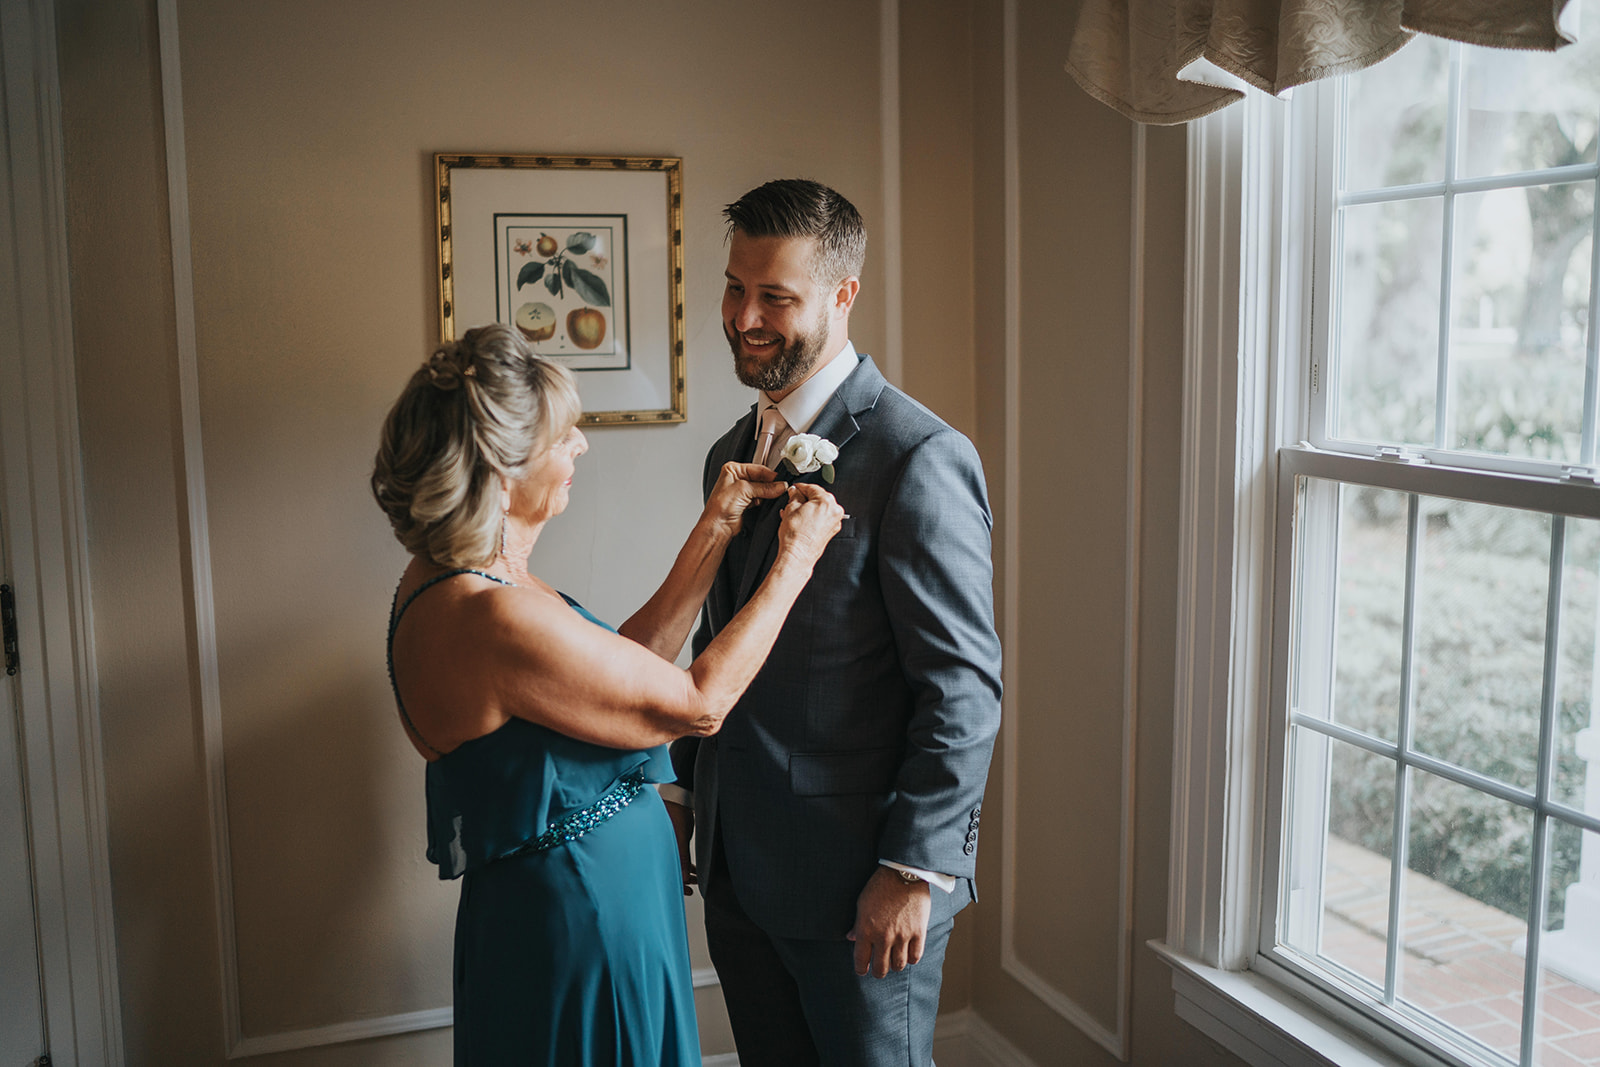 2019 March Troy and Kaitlyn Wedding Photos-0199.jpg